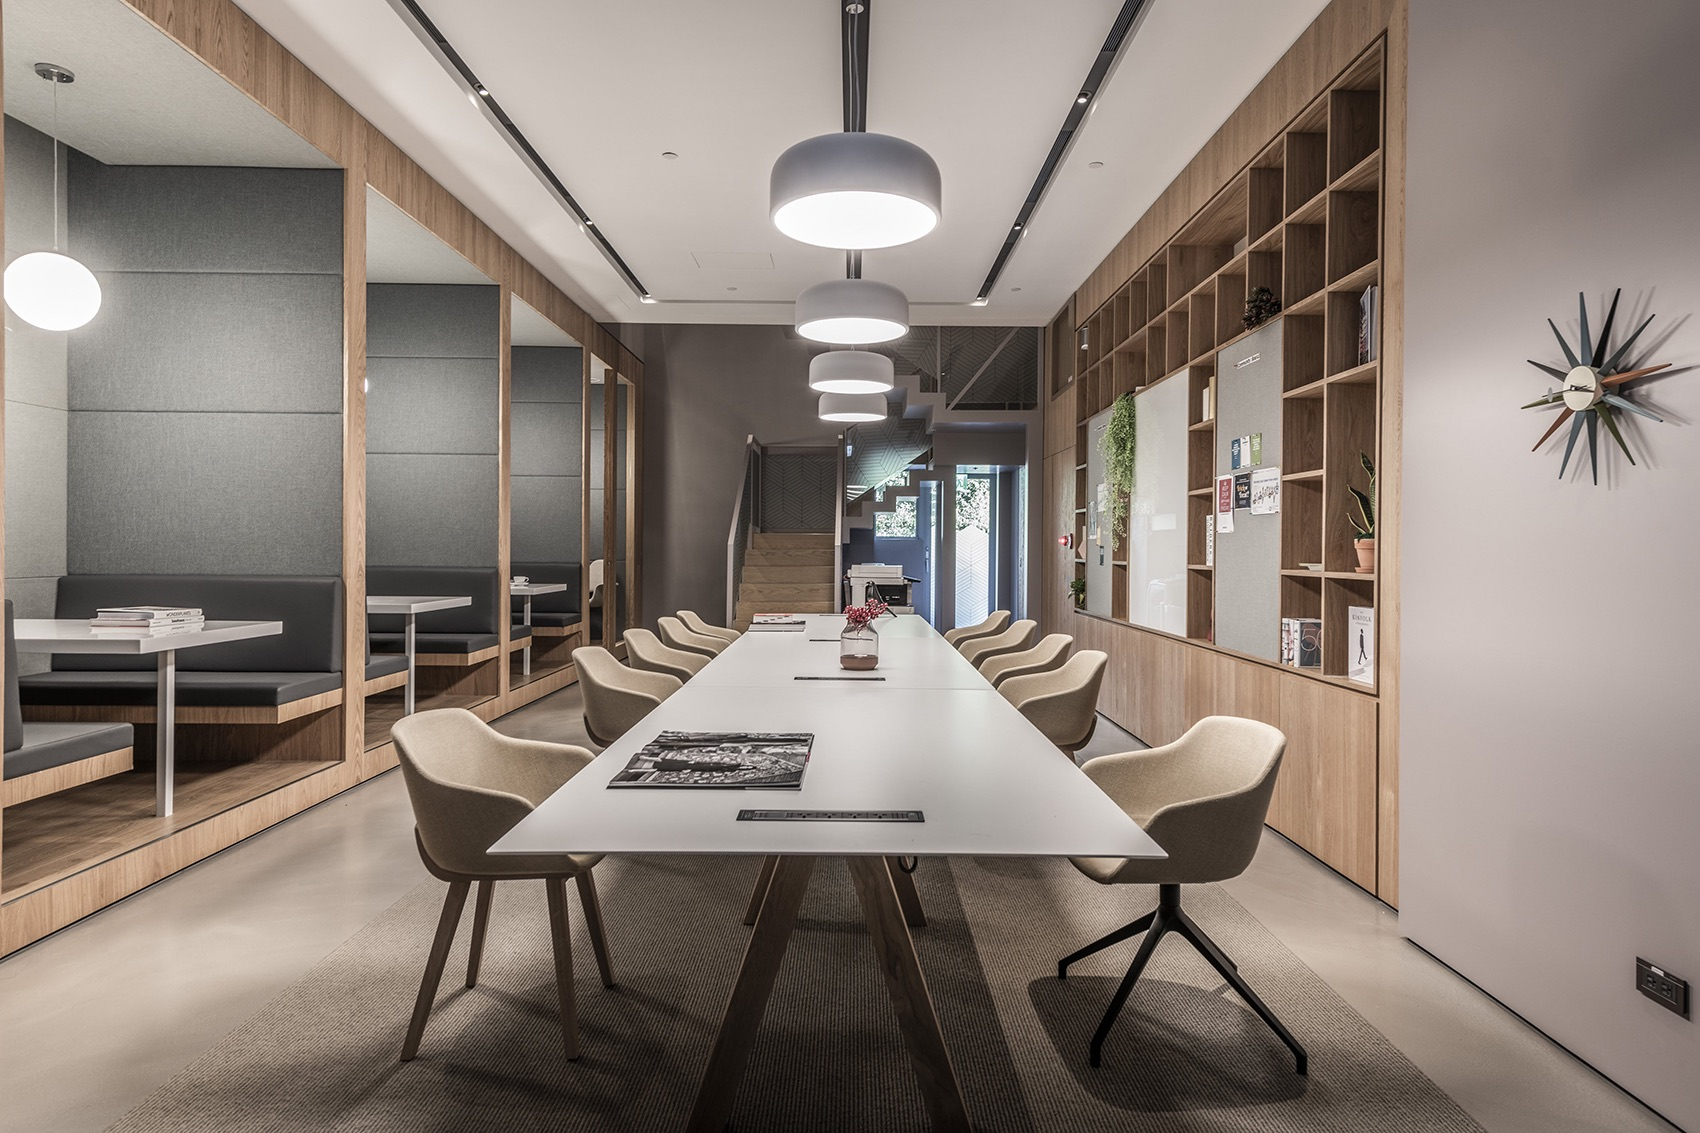 spaces-coworking-taiwan-10